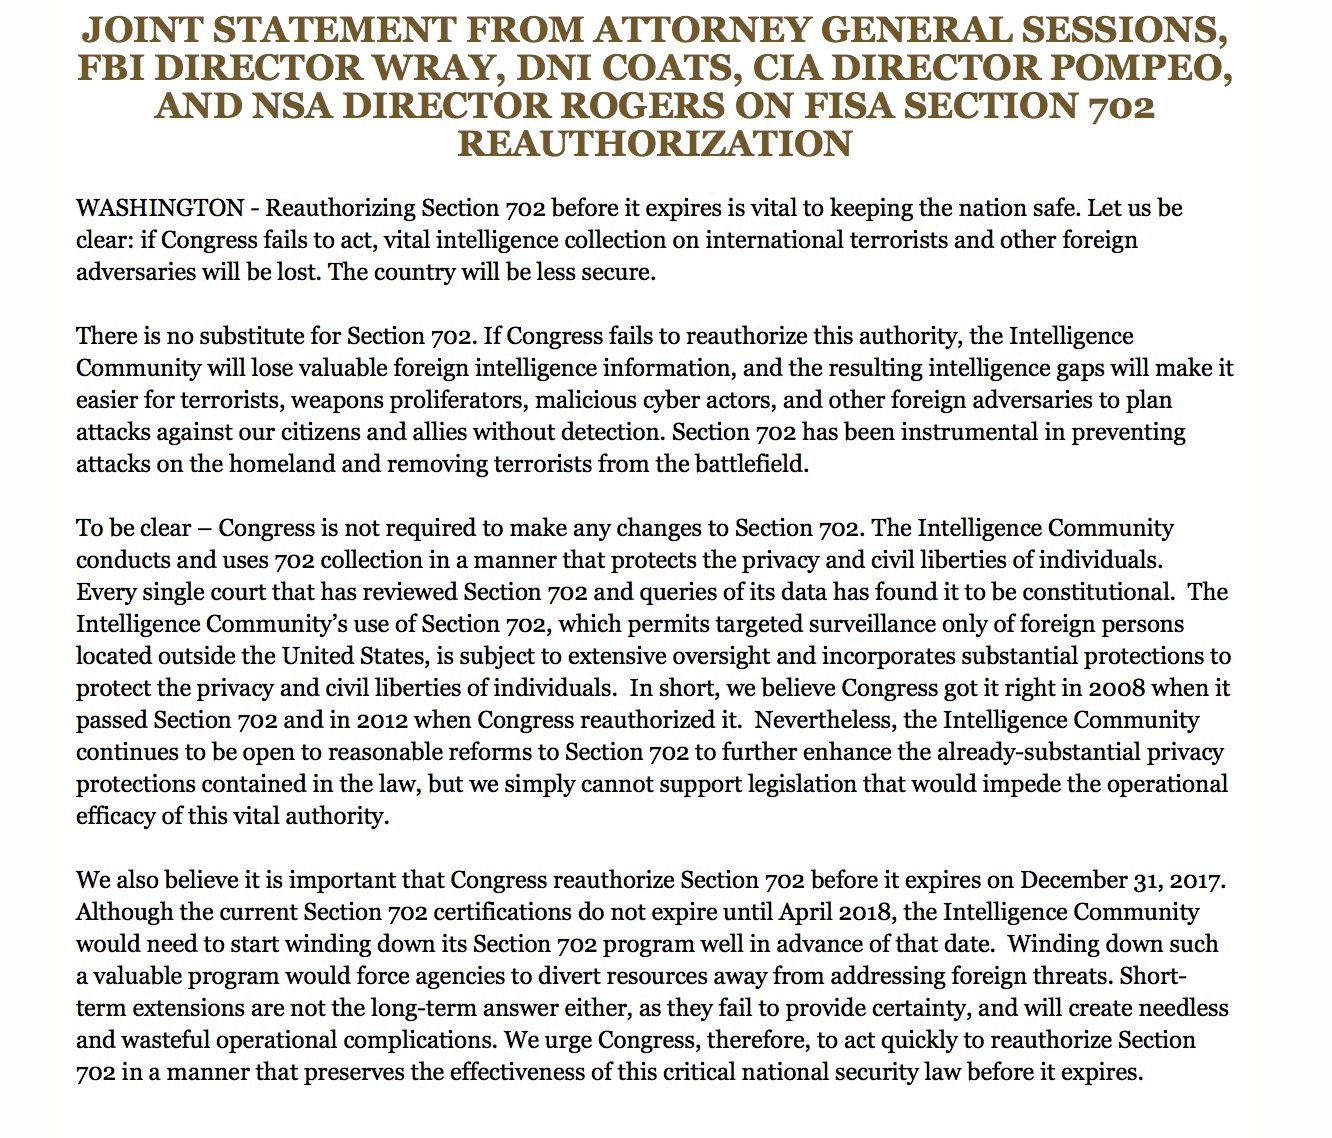 Sessions, Wray, Coats, Rogers, and Pompeo joint letter on Section 702 https://t.co/VgszC18HM6